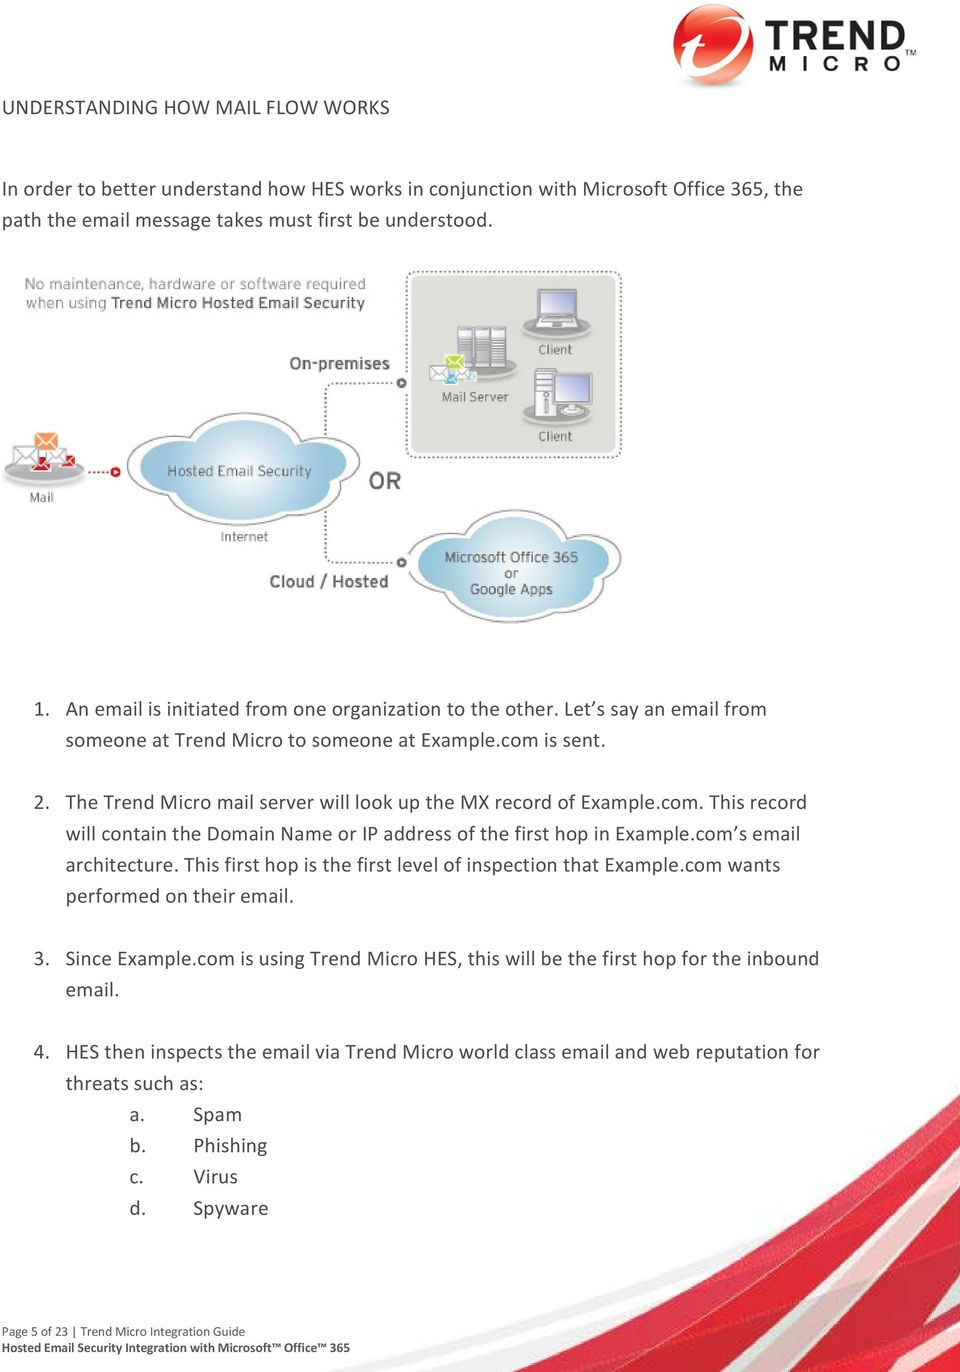 The Trend Micro mail server will look up the MX record of Example.com. This record will contain the Domain Name or IP address of the first hop in Example.com s email architecture.